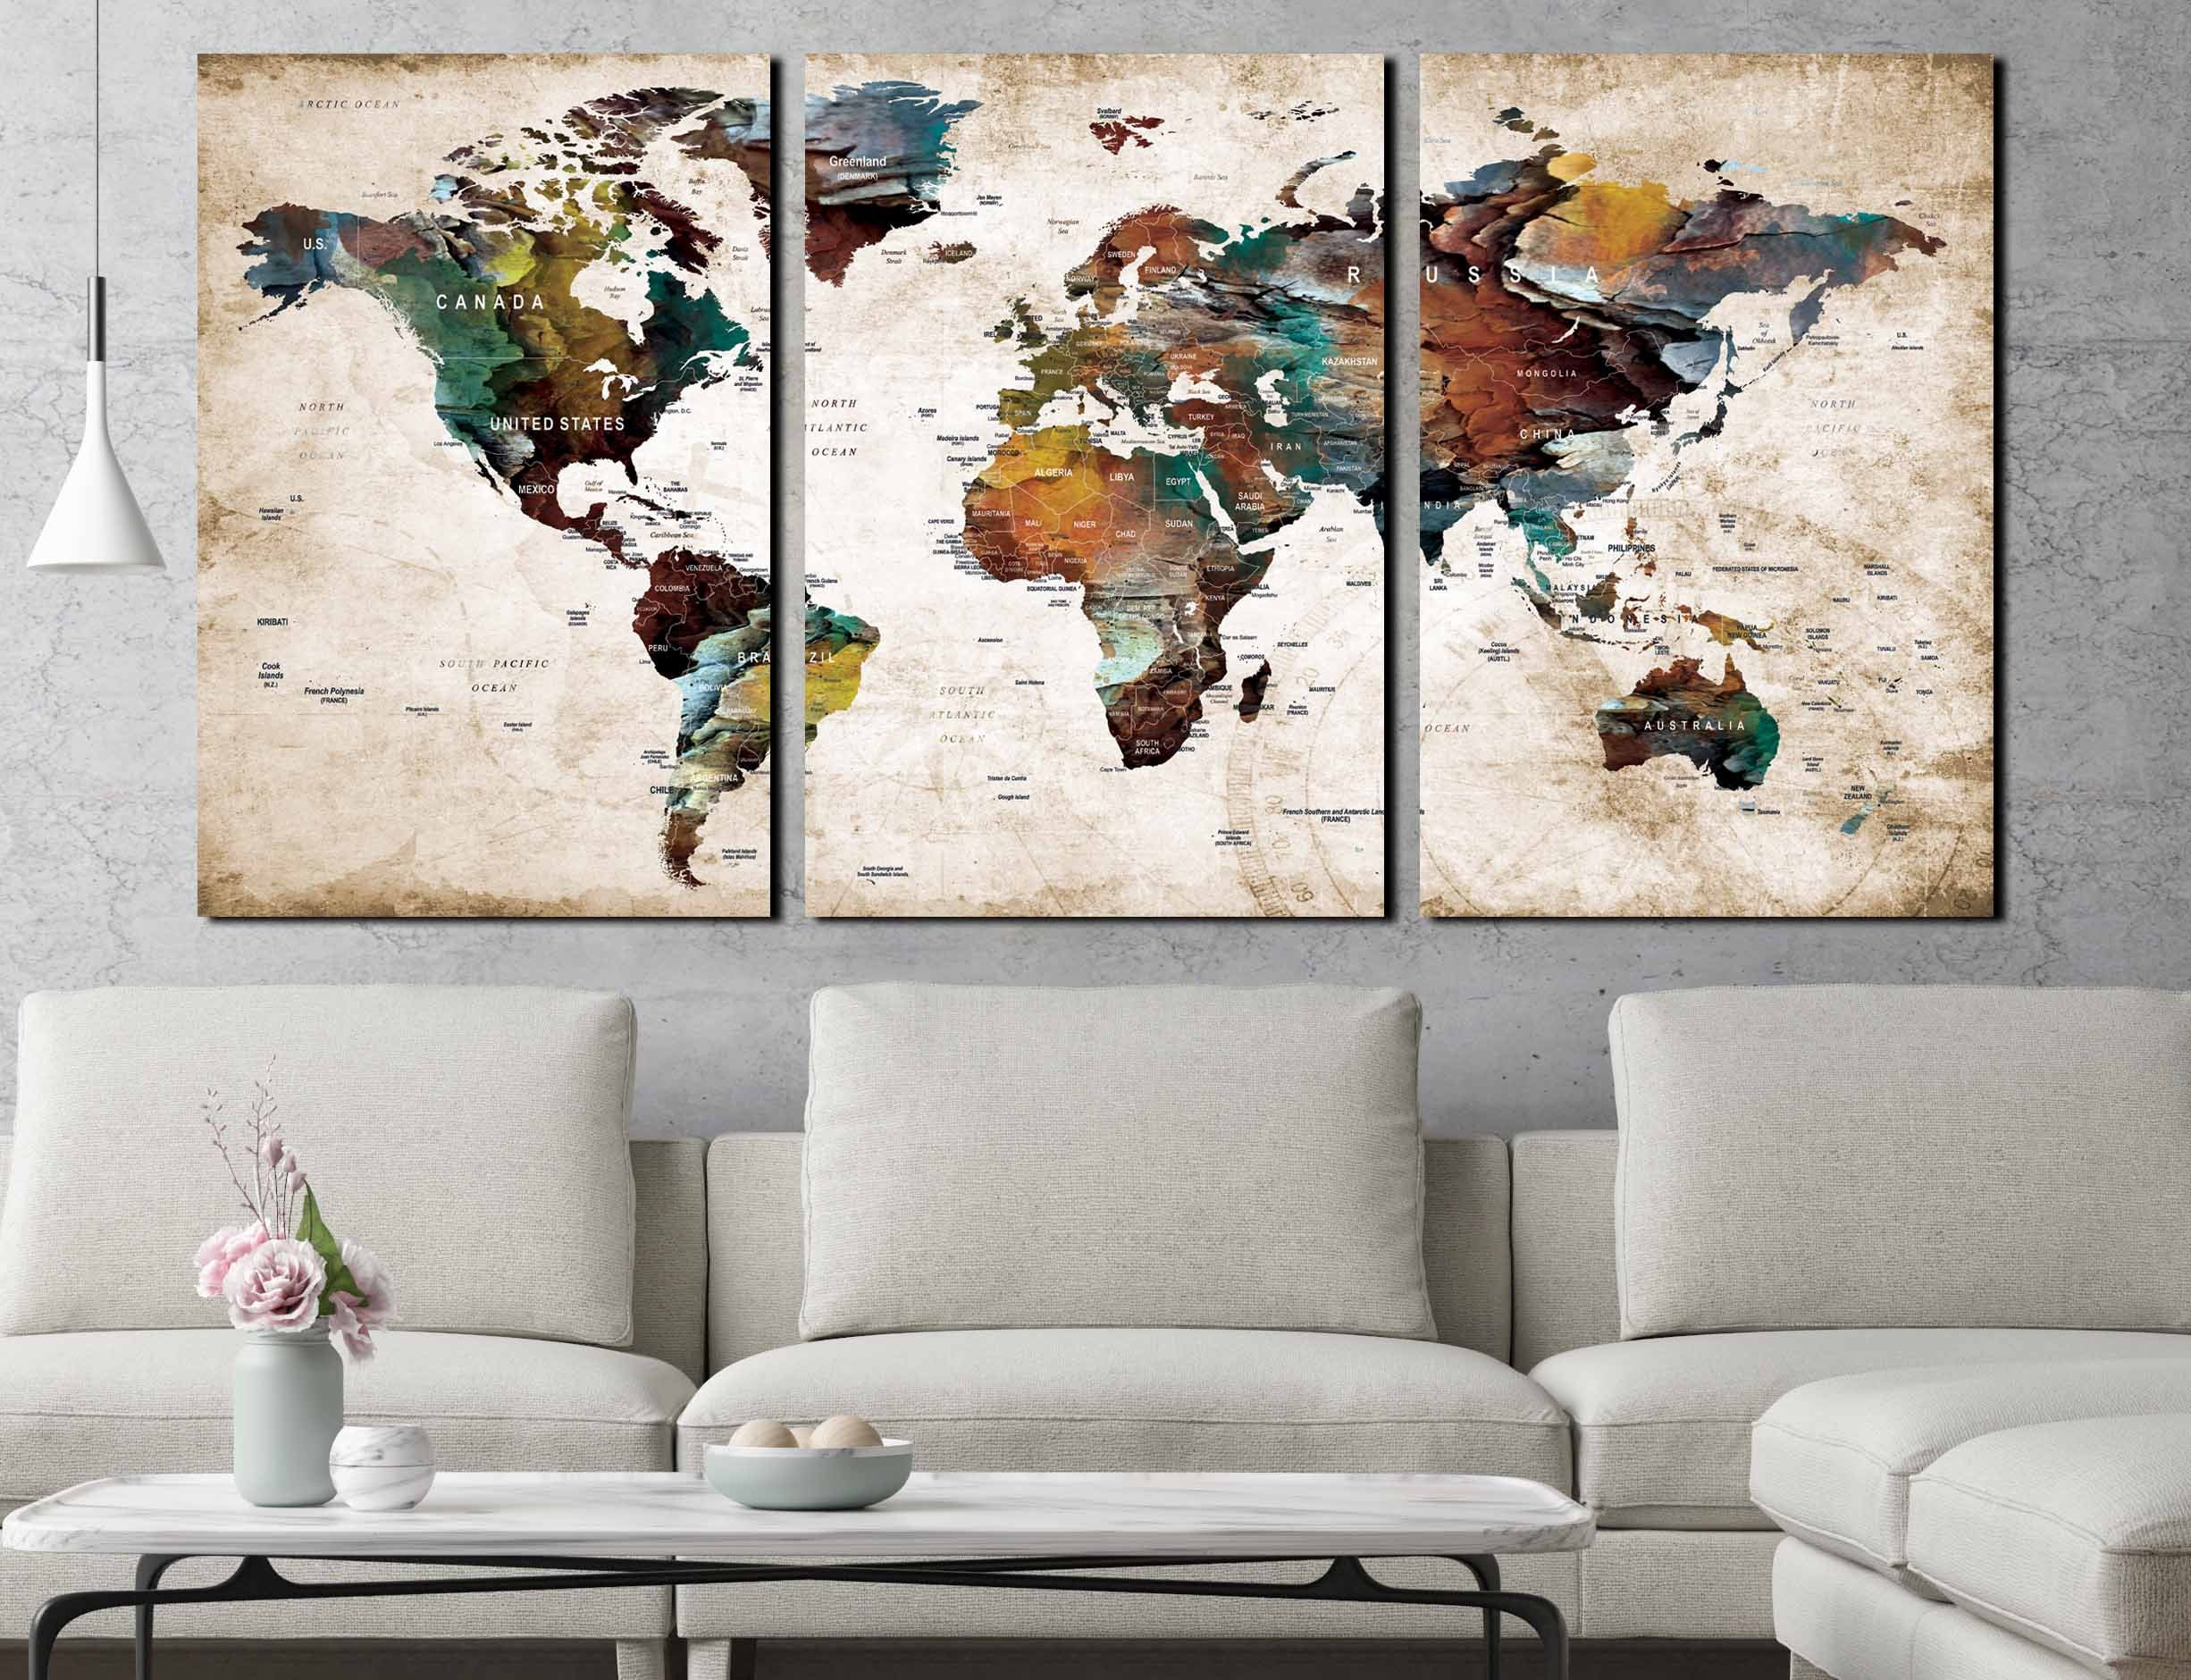 3 Piece Canvas World Map.Large World Map Canvas Print 3 Panel Ready To Hang World Map Wall